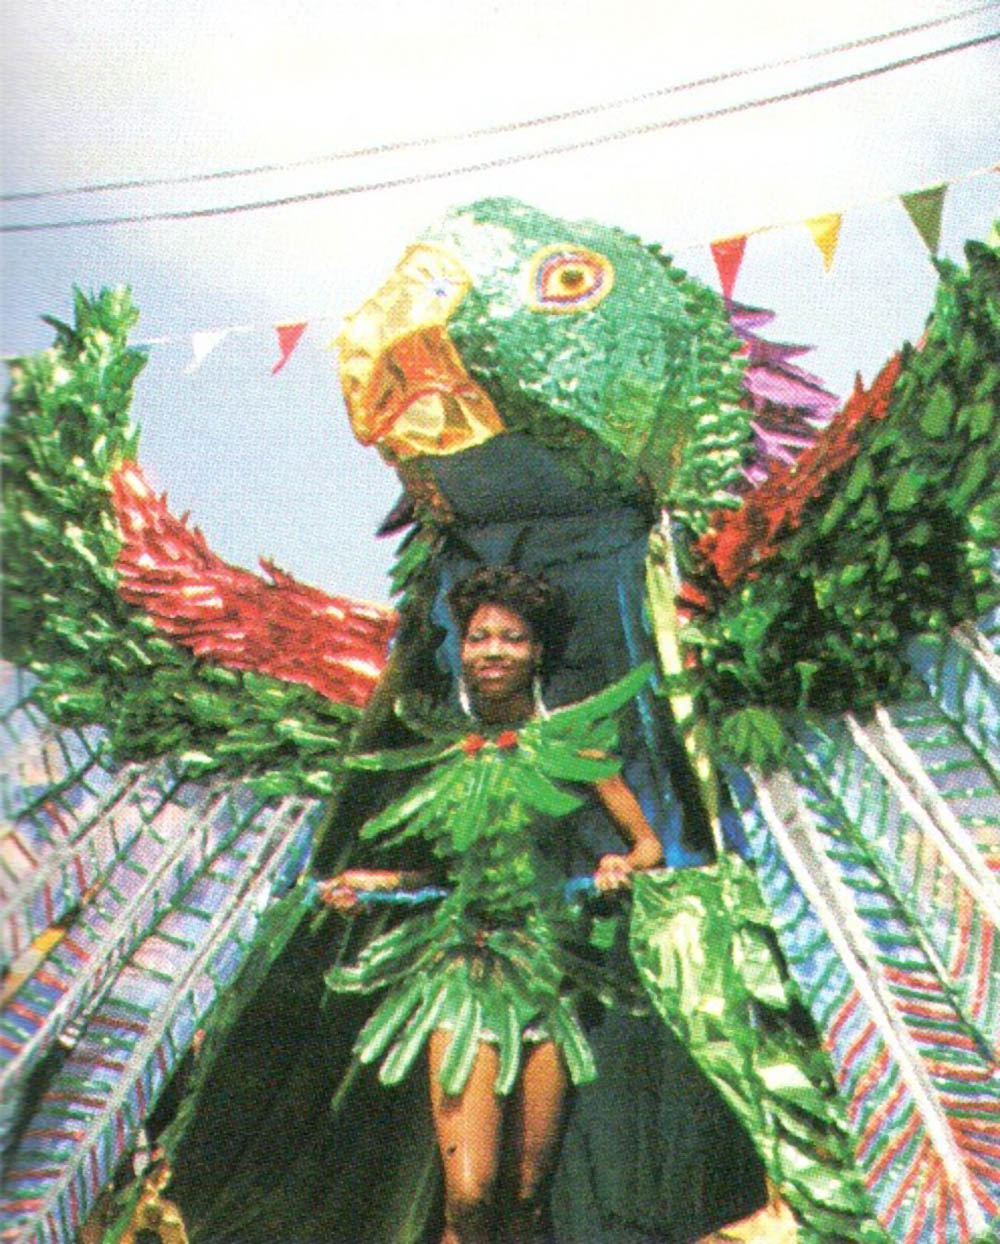 Lennox Honychurch's depiction of Dominica's national bird, the Sisserou parrot, takes the streets of Roseau. Photograph courtesy Lennox Honychurch